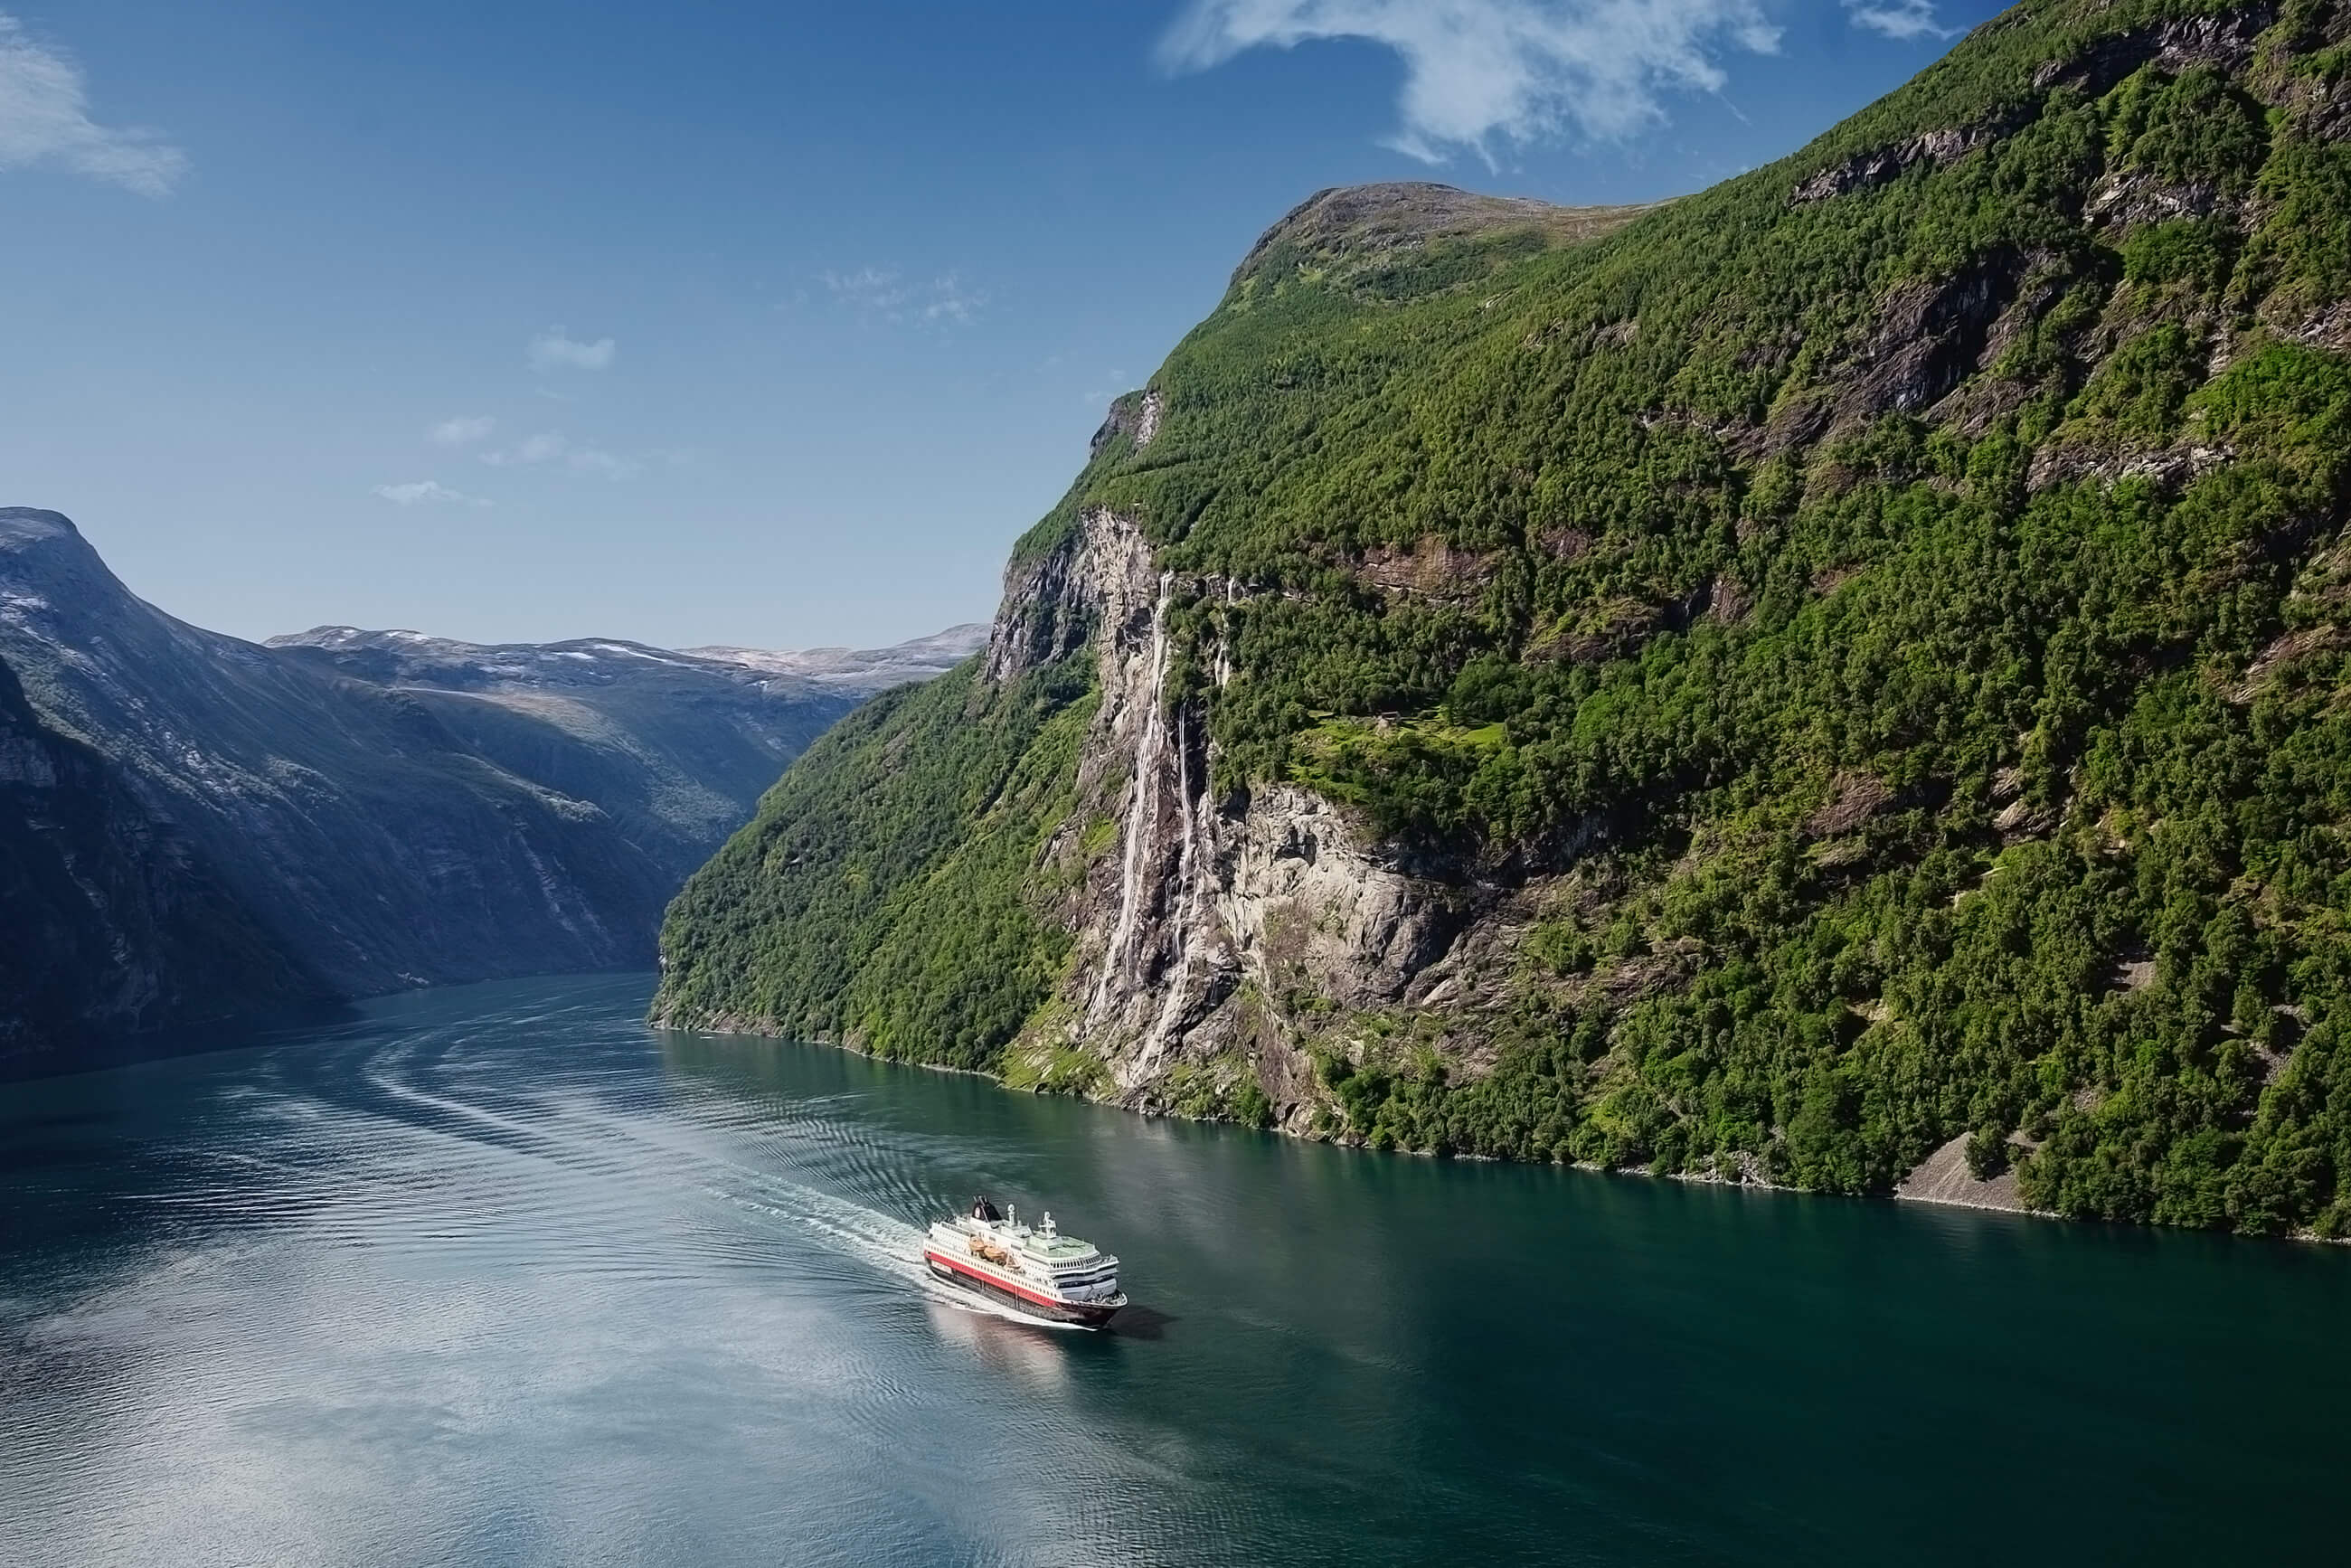 https://bubo.sk/uploads/galleries/5044/ms-nordlys-geiranger-norway-hgr-130570--photo_agurtxane_concellon.jpg